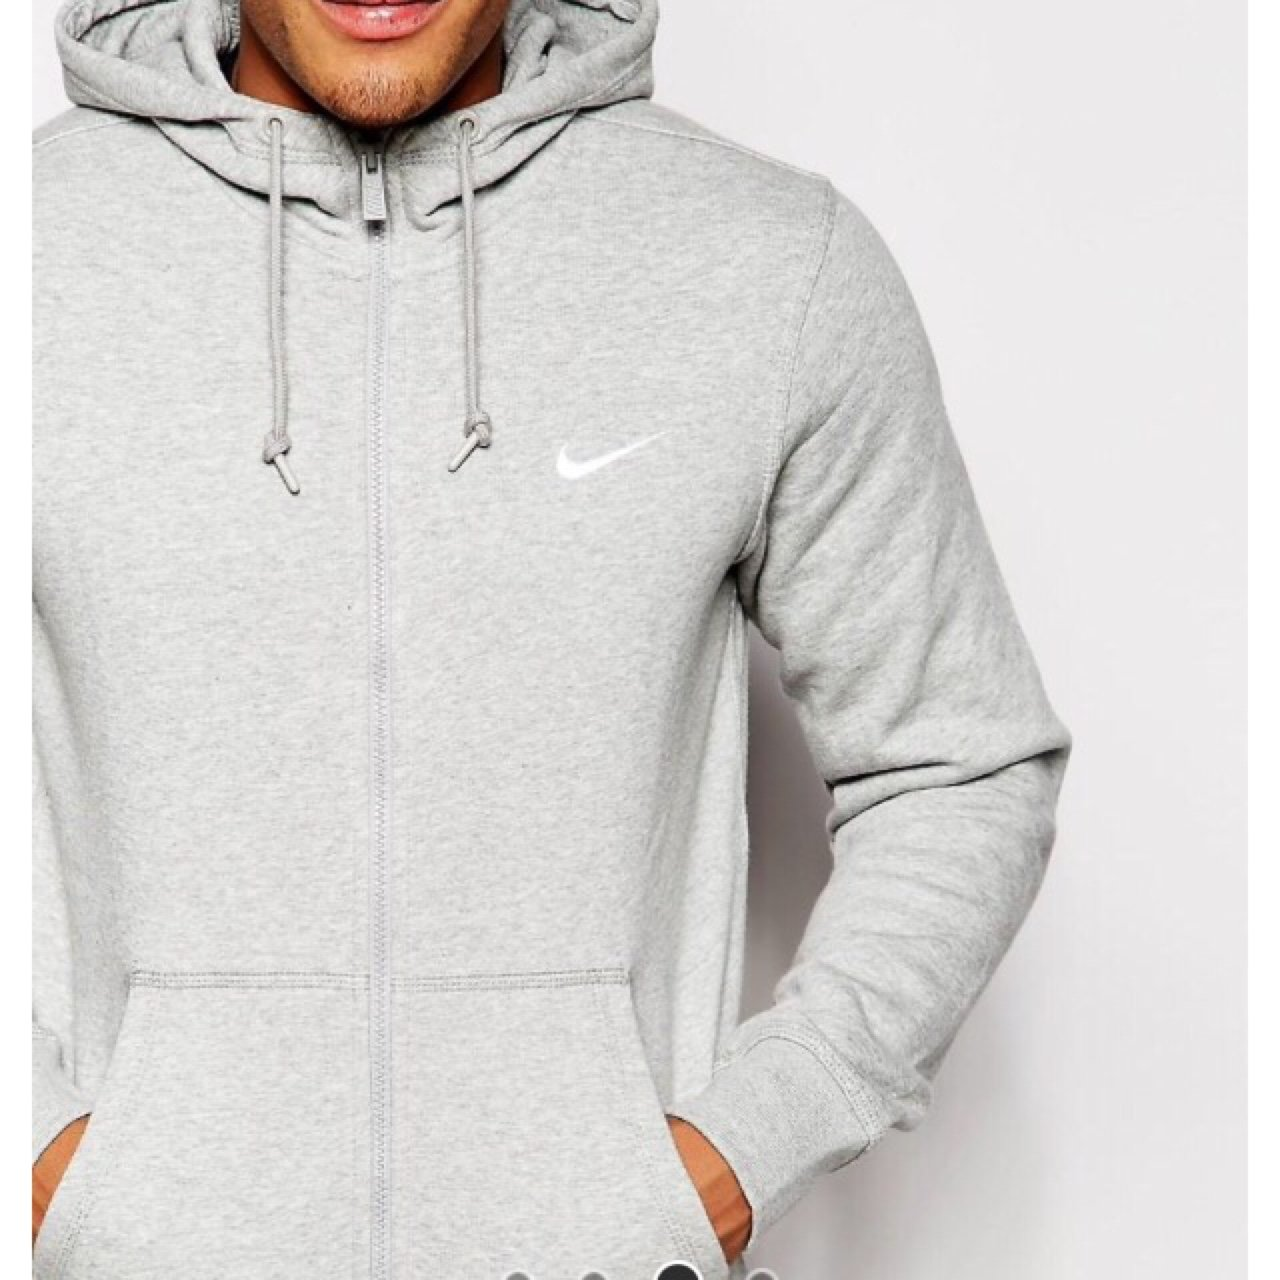 Grey Nike zip up hoodie hoody jacket in a size large L a9cbdae52887